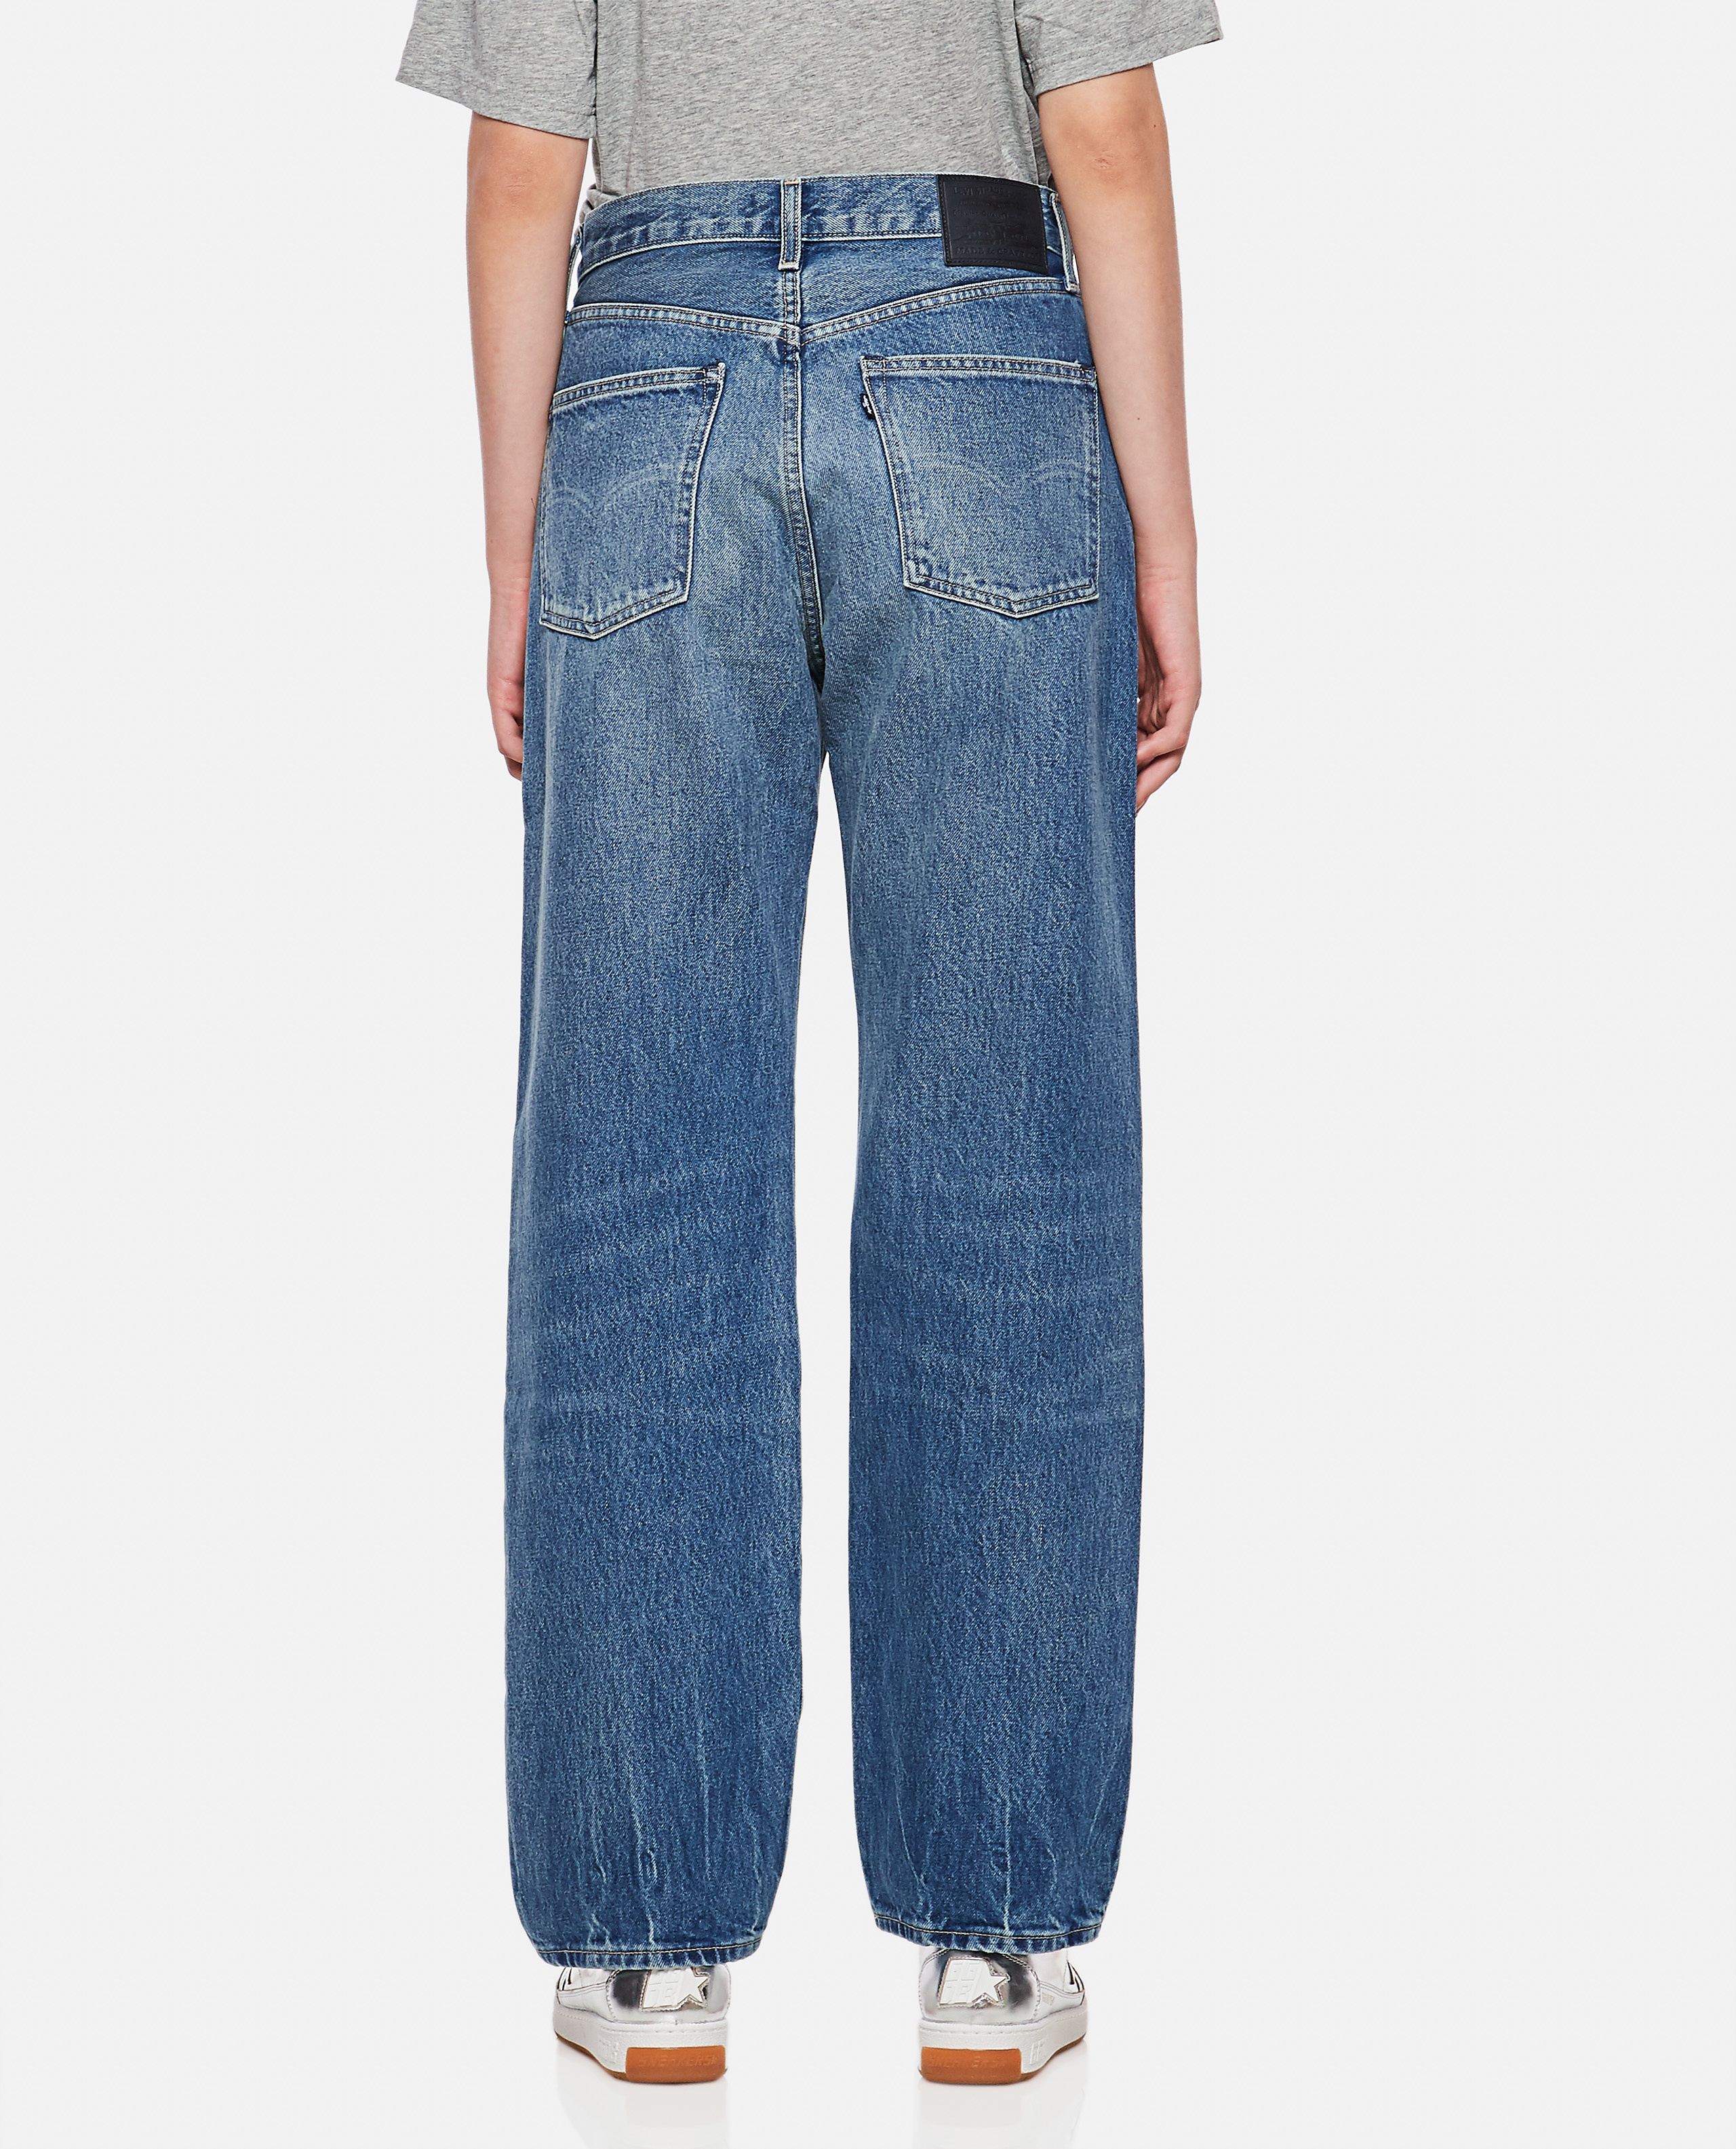 LEVI'S® MADE & CRAFTED® THE COLUMN JEANS Women Levi Strauss & Co. 000352890051347 3